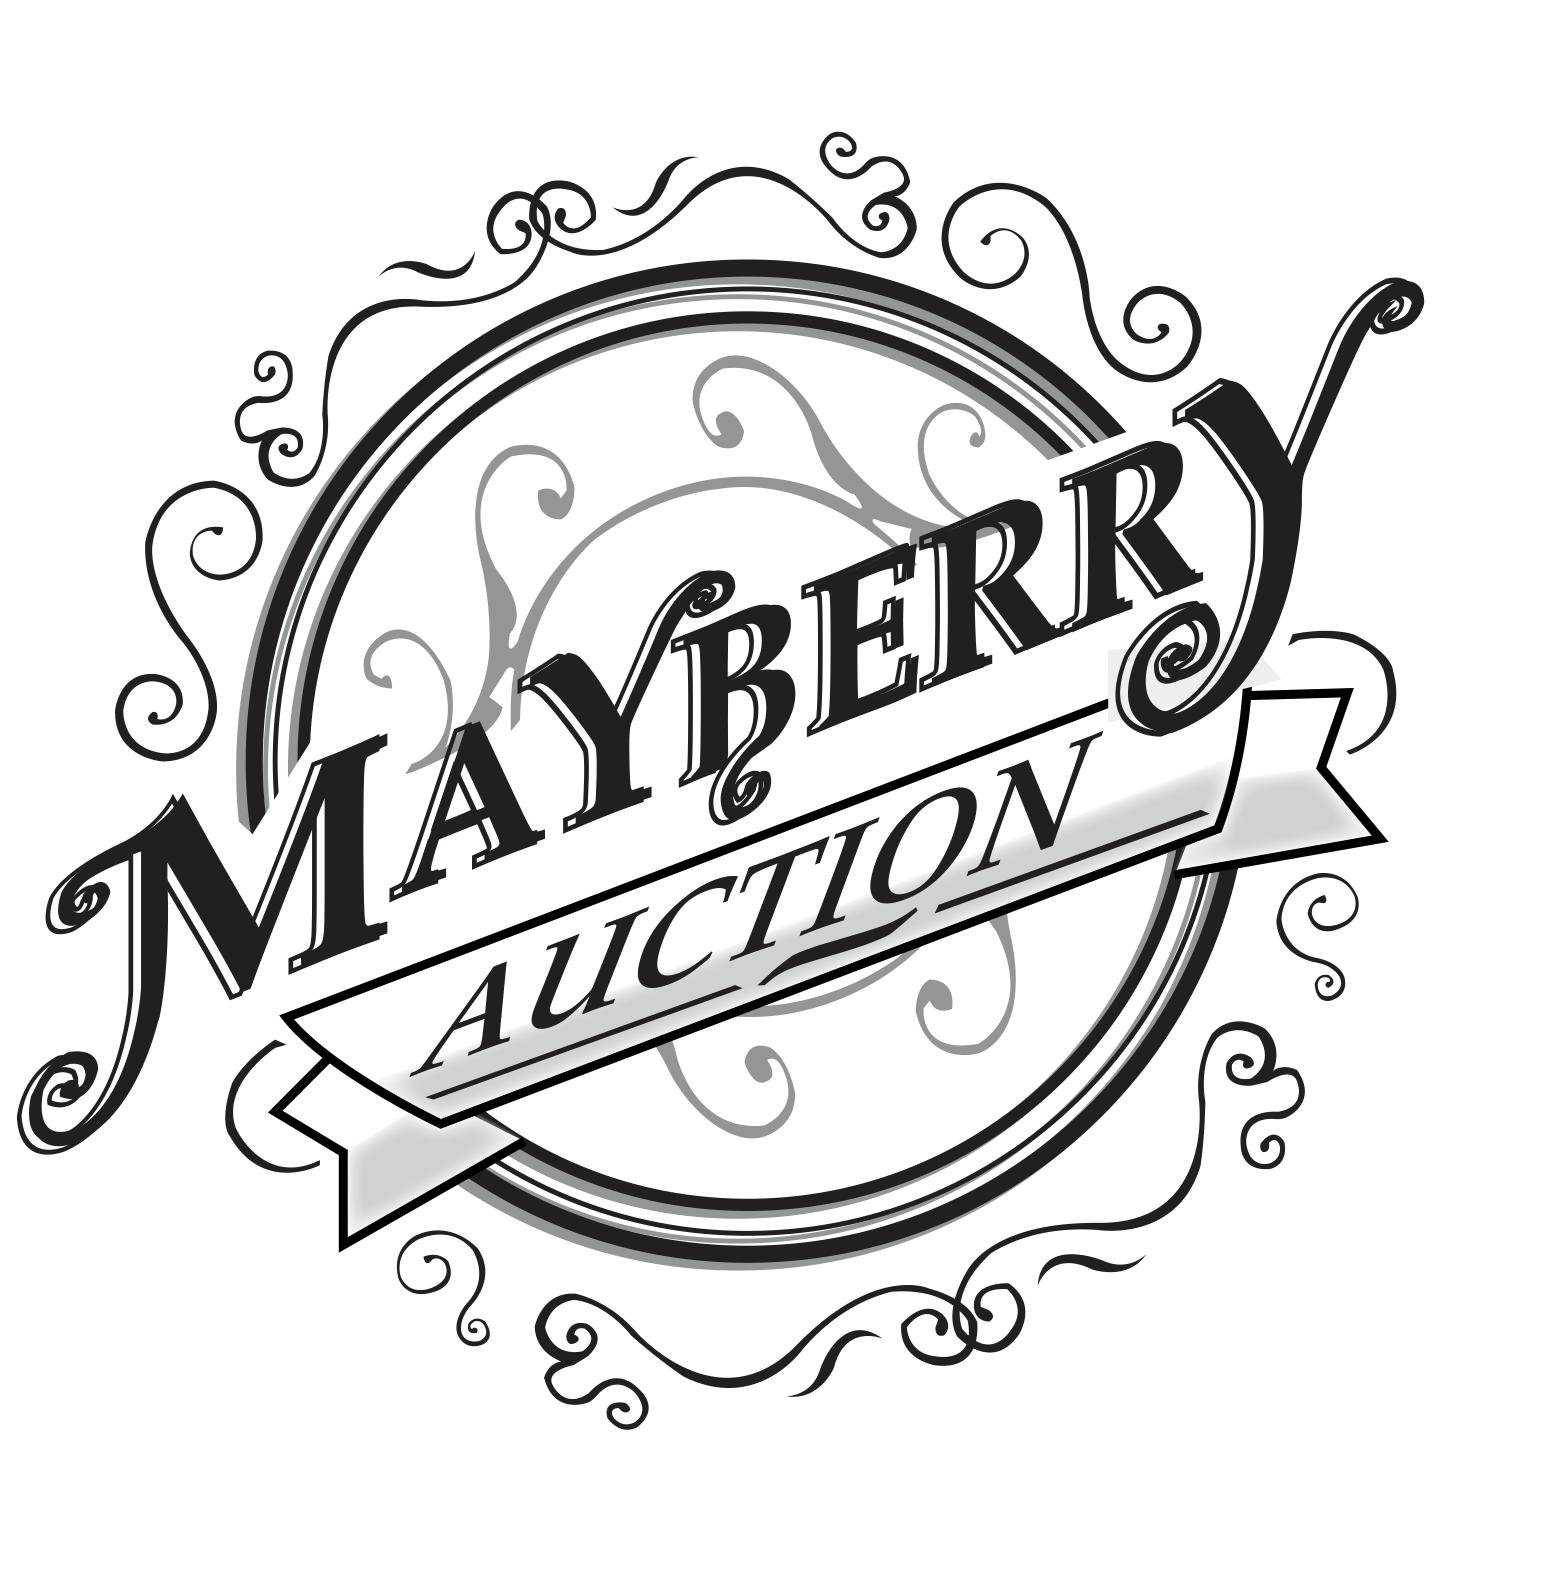 Mayberry Auction